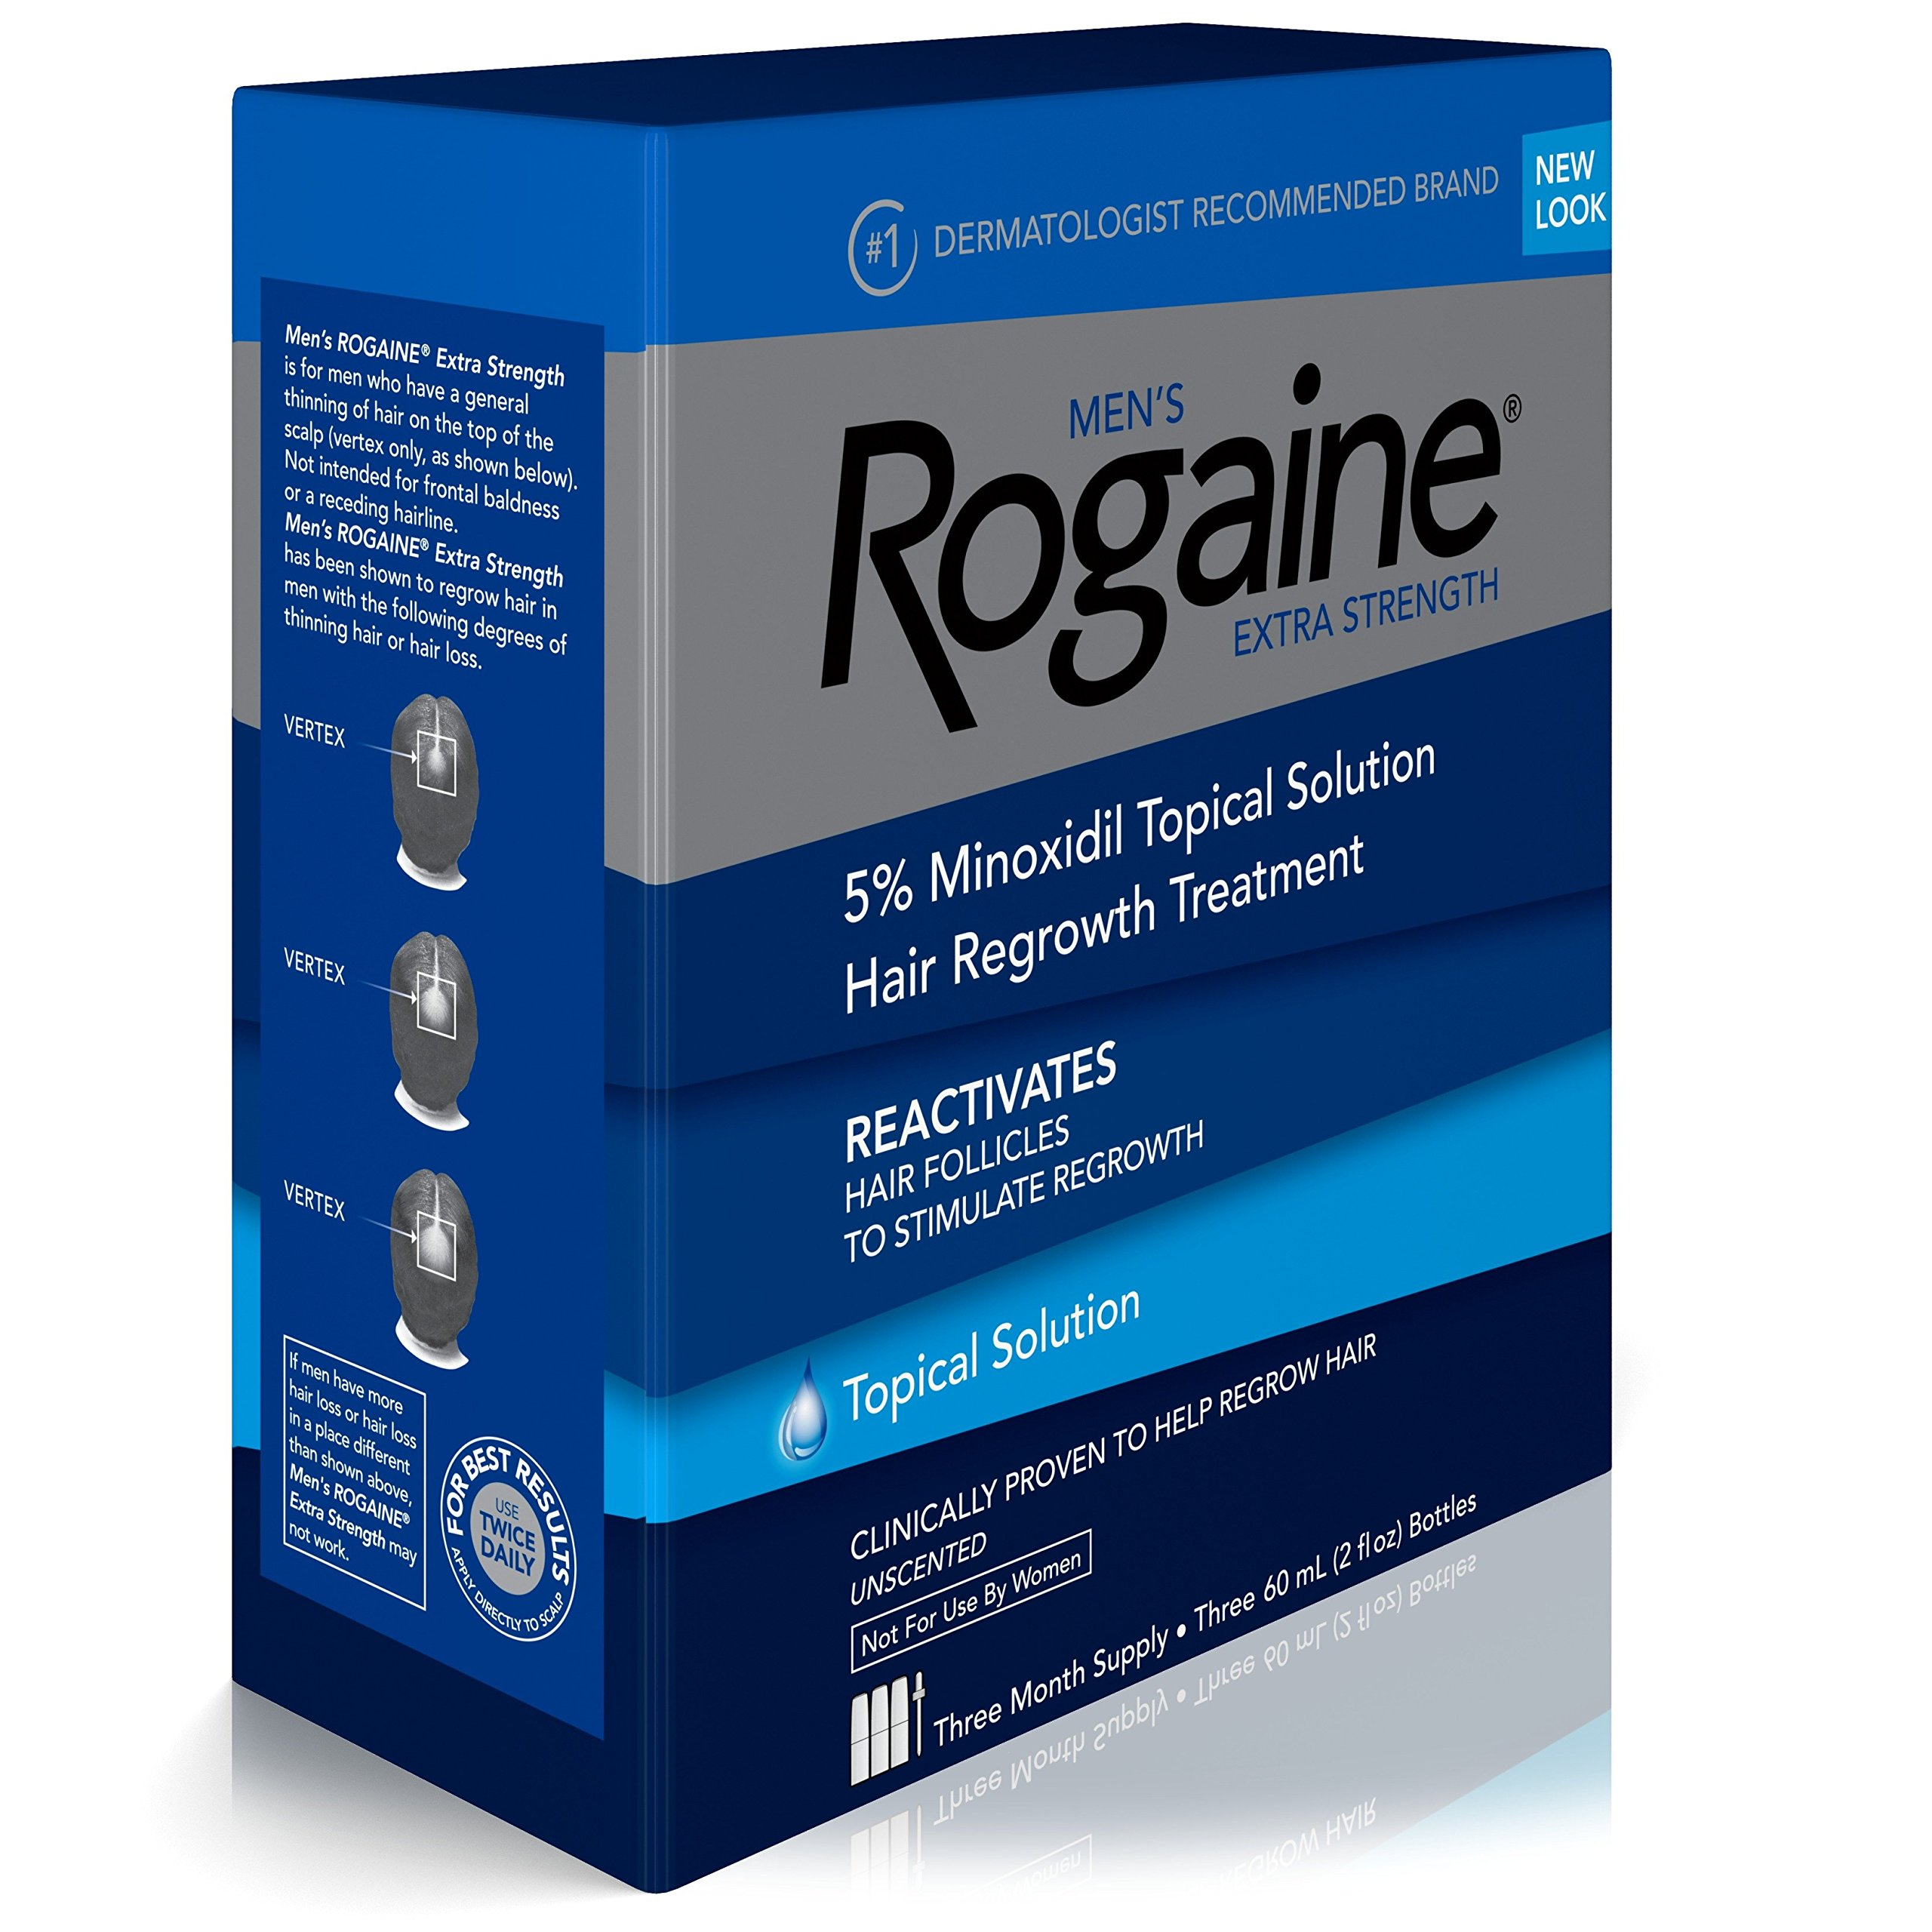 Men's Rogaine Extra Strength 5% Minoxidil Topical Solution for Hair Loss and Hair Regrowth, Topical Treatment for Thinning Hair, 3-Month Supply by Rogaine (Image #3)